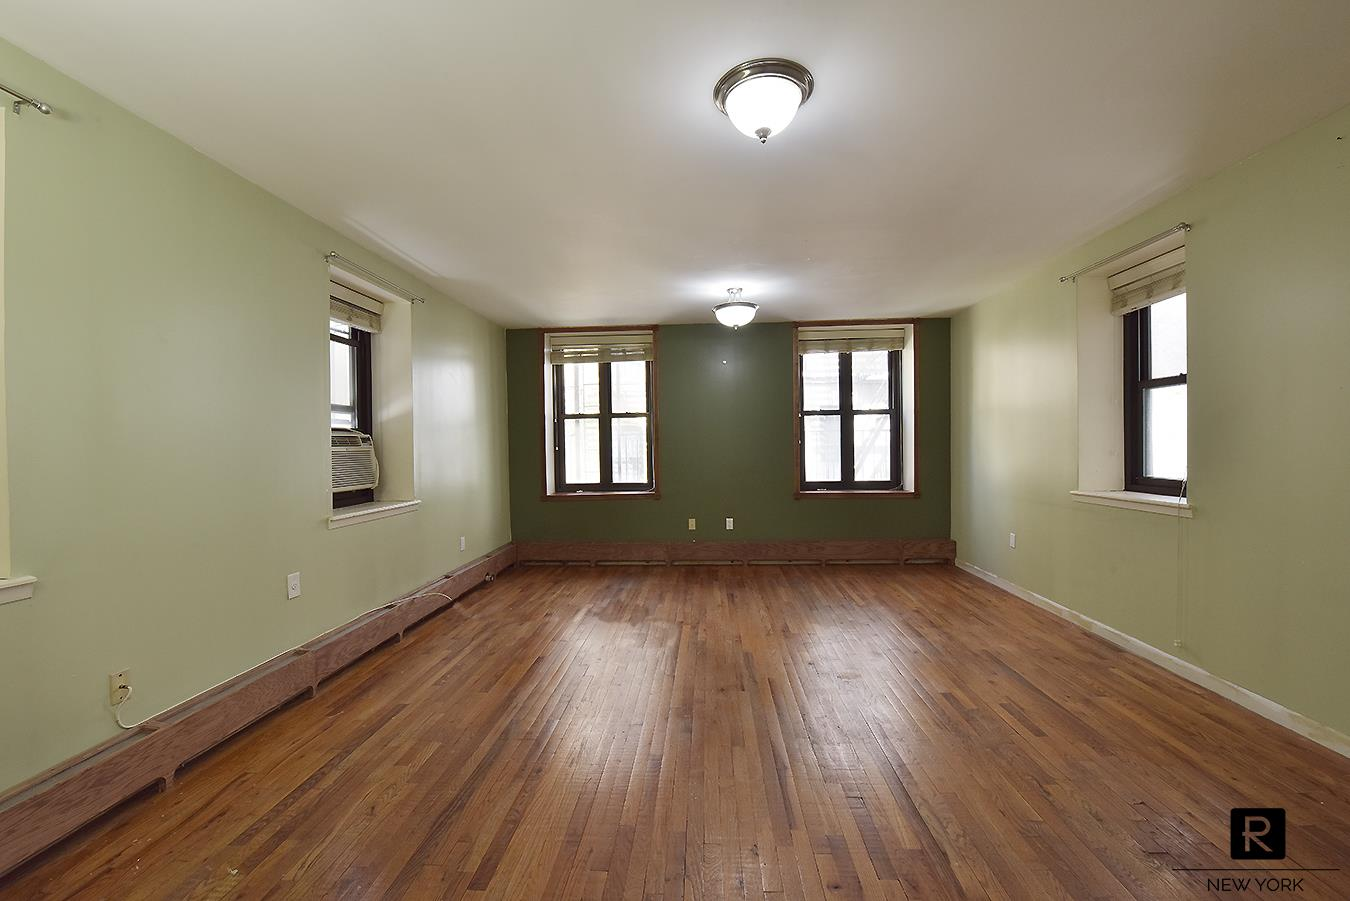 Spacious, quiet and convenient 2BR HDFC Coop on East 131 Street in East Harlem located on a quiet tree-line block just steps to the 2,3,4,5,6 Subway (125th Street)! This large 1st floor unit features a layout that maximizes the available square footage with little wasted space and features two bedrooms with large/ample closet space, a pass-thru breakfast bar kitchen, a large bathroom with tub and an oversized & quiet living room with six (6) windows offering you great cross circulation of air and light. The building has laundry and is pet friendly and allows 90% financing. There is NO flip tax. Gifting/Co-purchasing allowed. Centrally located near all the shops, conveniences and eateries! This is an excellent opportunity to own a piece Harlem at an amazing value!***As this is an HDFC Coop, there are income limits based on the family household size  Family of 1 - $137,940,Family of 2 - $157,575Family of 3 - $177,210Family of 4 - $196,845Family of 5 - $212,685*****